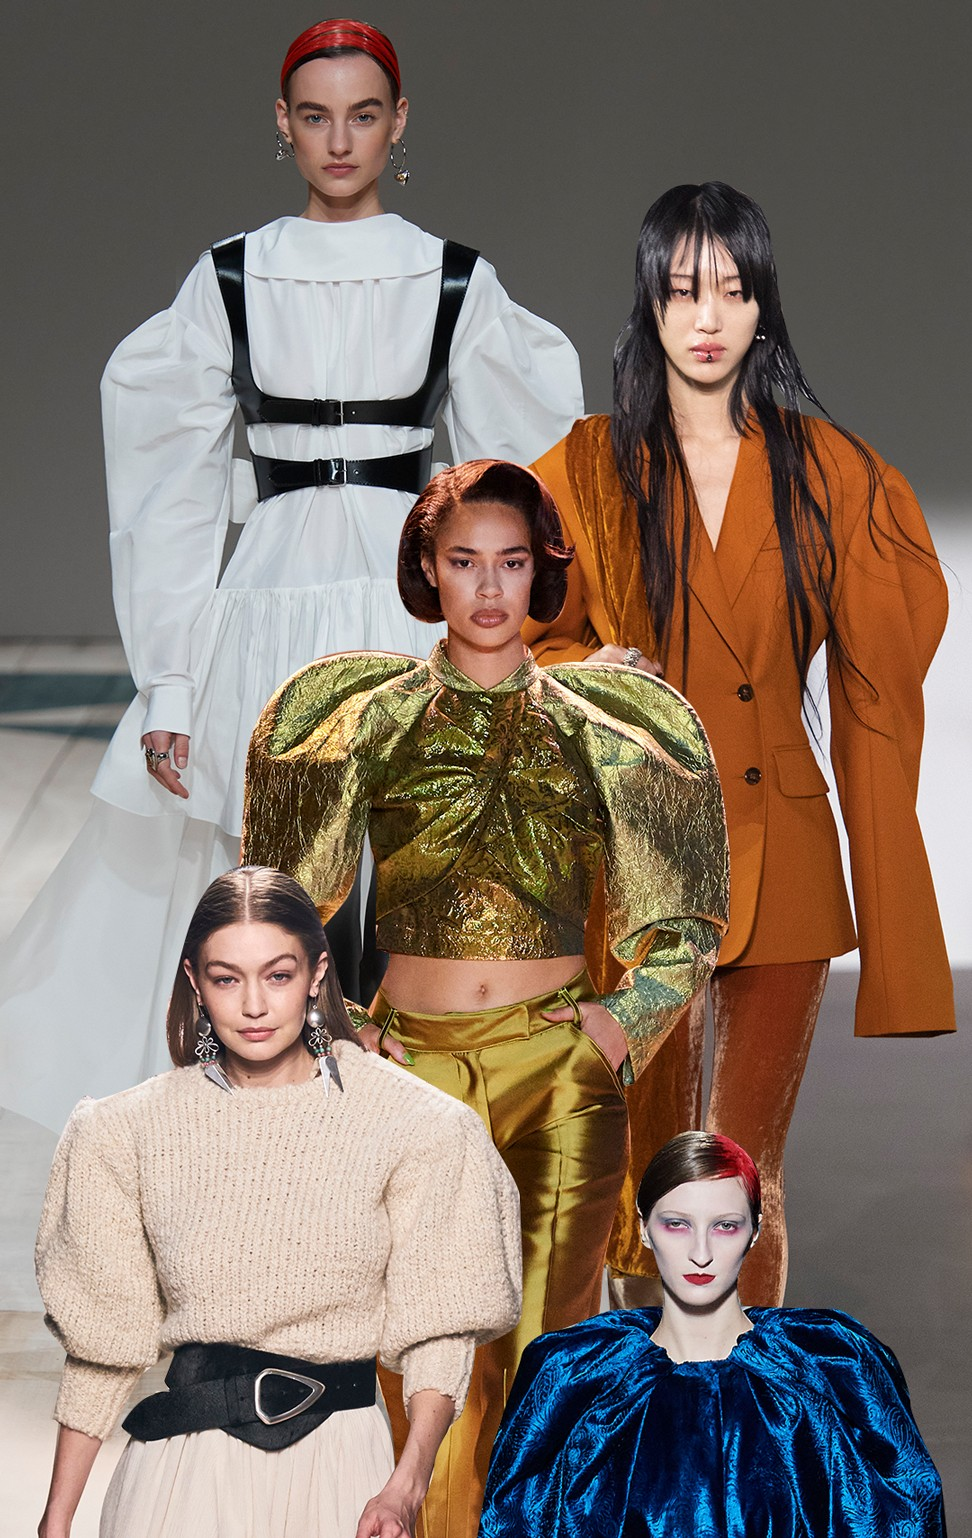 The Hottest And Most Coveted Fashion Trends From The Fall 2020 Runways (21) fashion trend The Hottest And Most Coveted Fashion Trends From The Fall 2020 Runways The Hottest And Most Coveted Fashion Trends From The Fall 2020 Runways 21